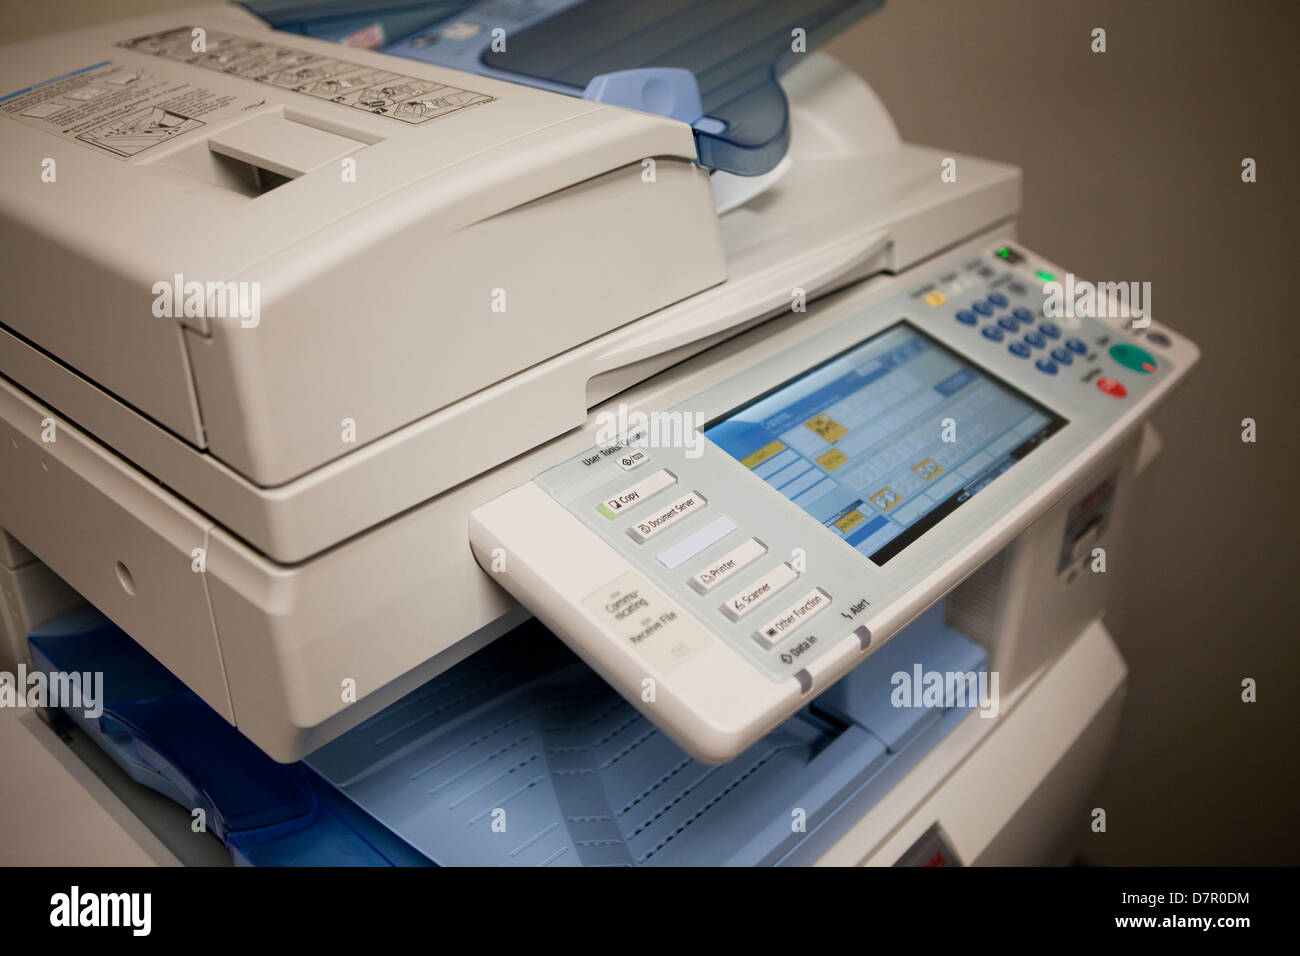 Office copying machine - Stock Image